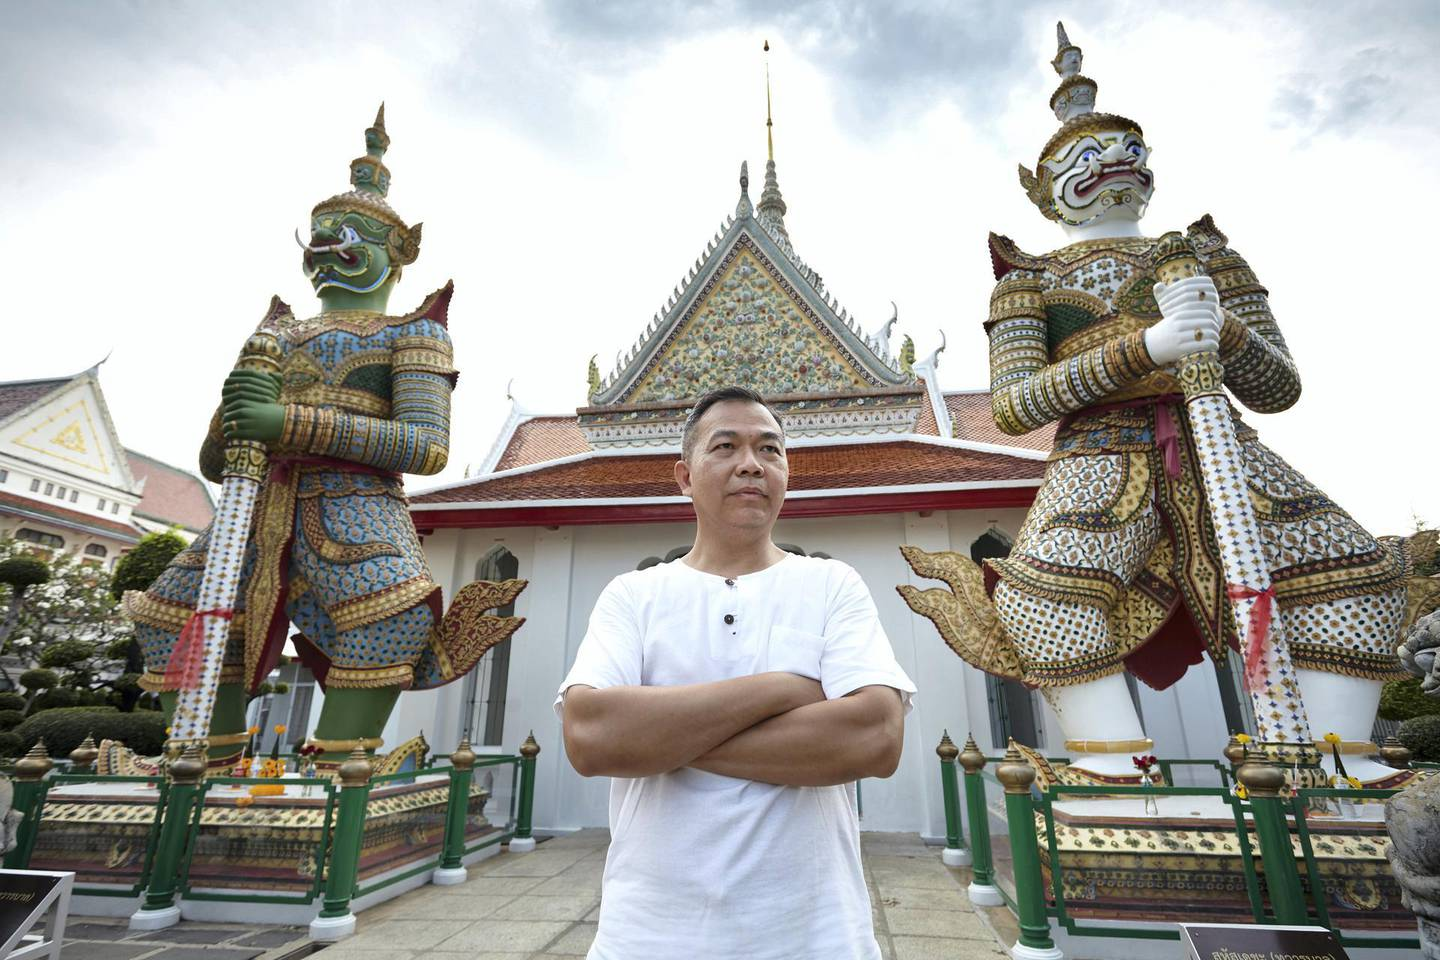 Bangkok-Thailand-Temple of dawn- Hartanto's Portrait, standing in front of the two famous Guardian Giant statues at Wat Arun (the Temple of dawn). Sasamon Rattanalangkarn for The National